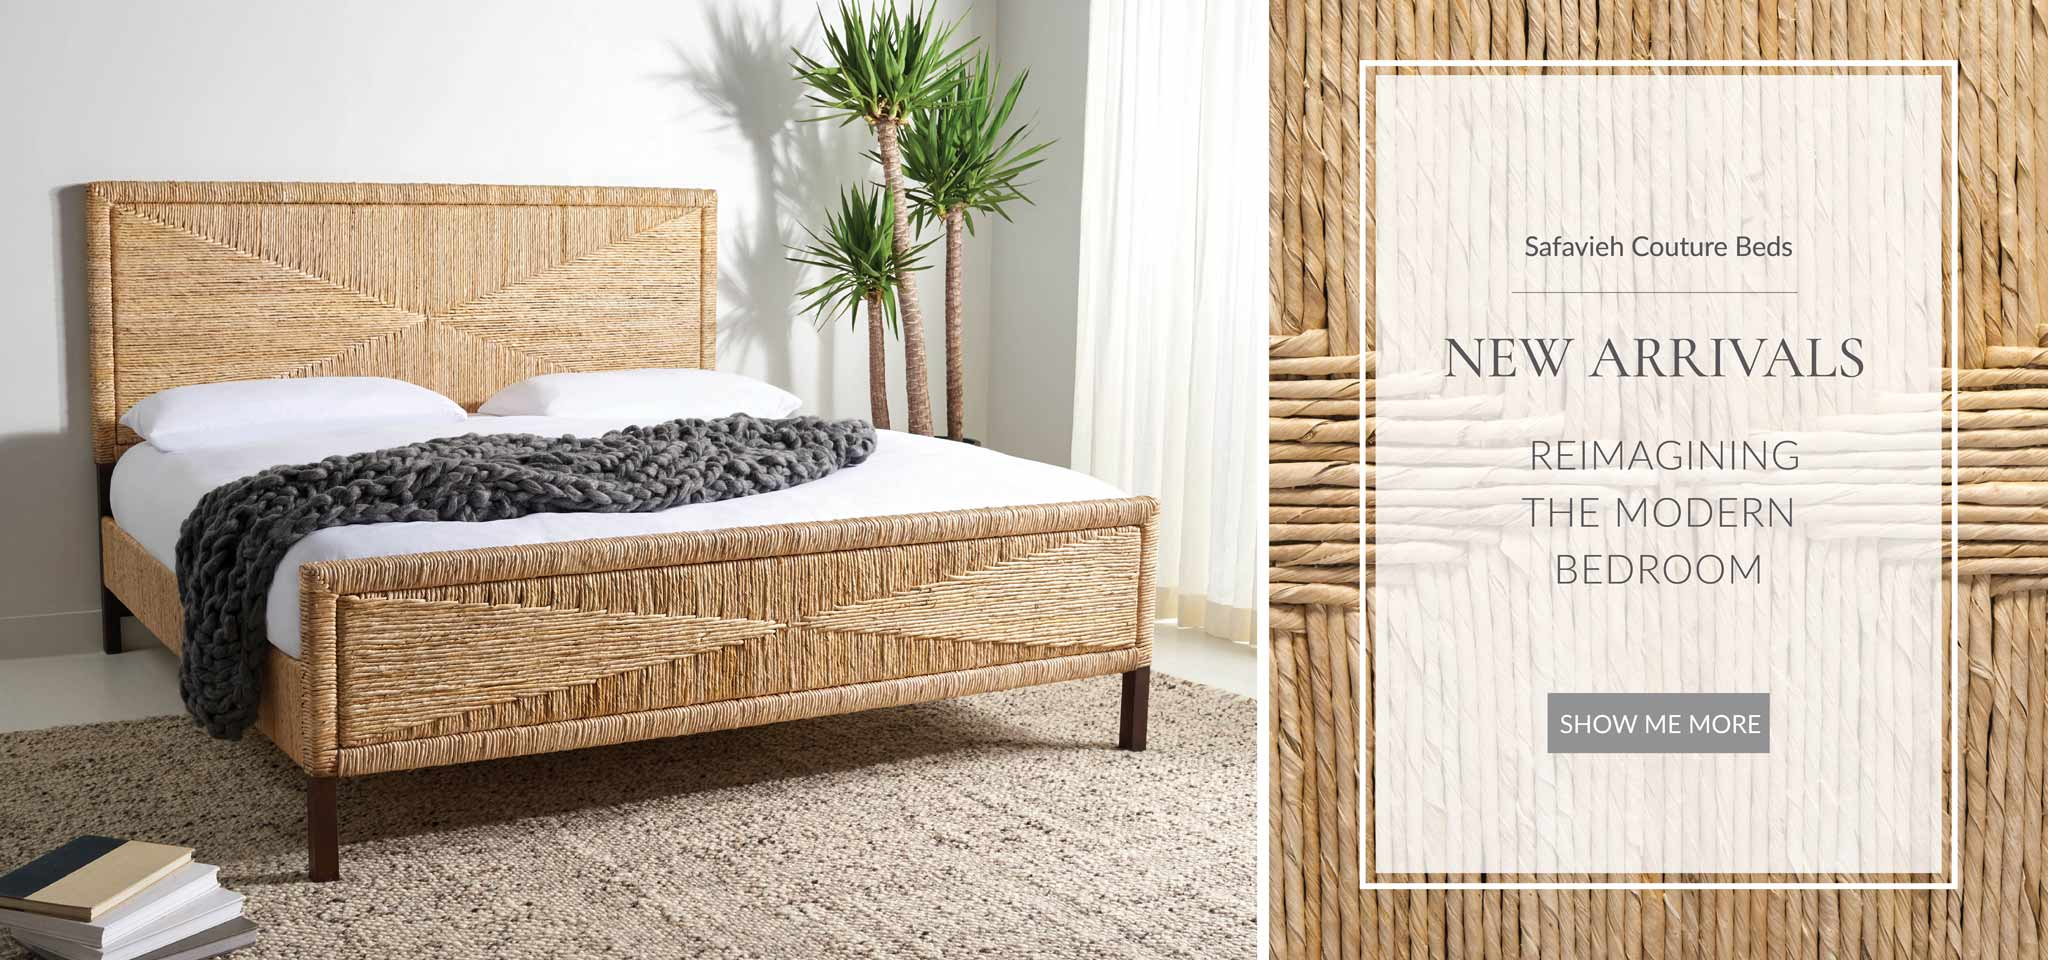 Safavieh Couture Beds New Arrivals